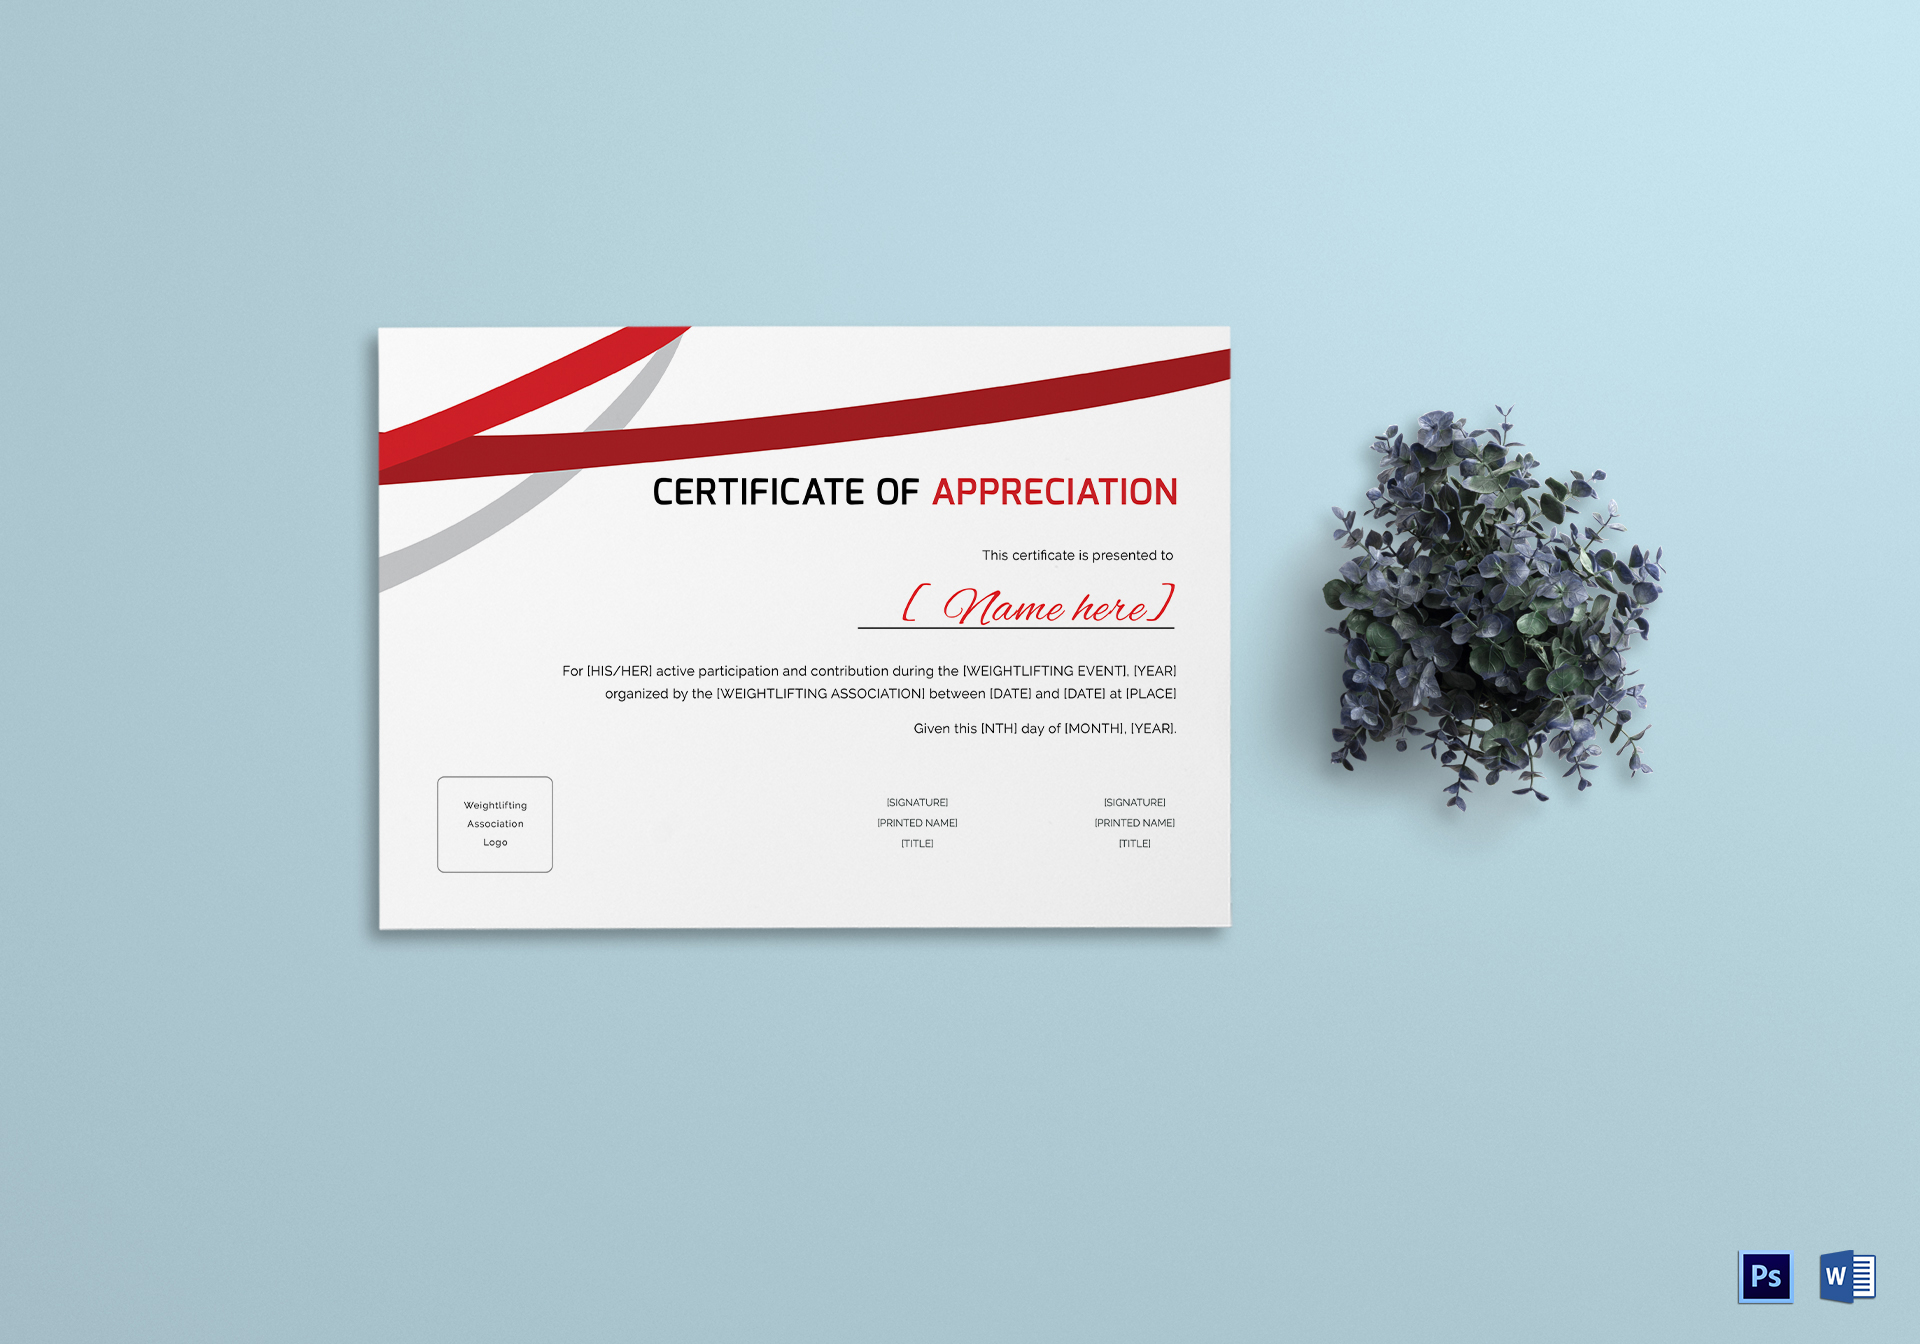 Weight Lifting Appreciation Certificate Template